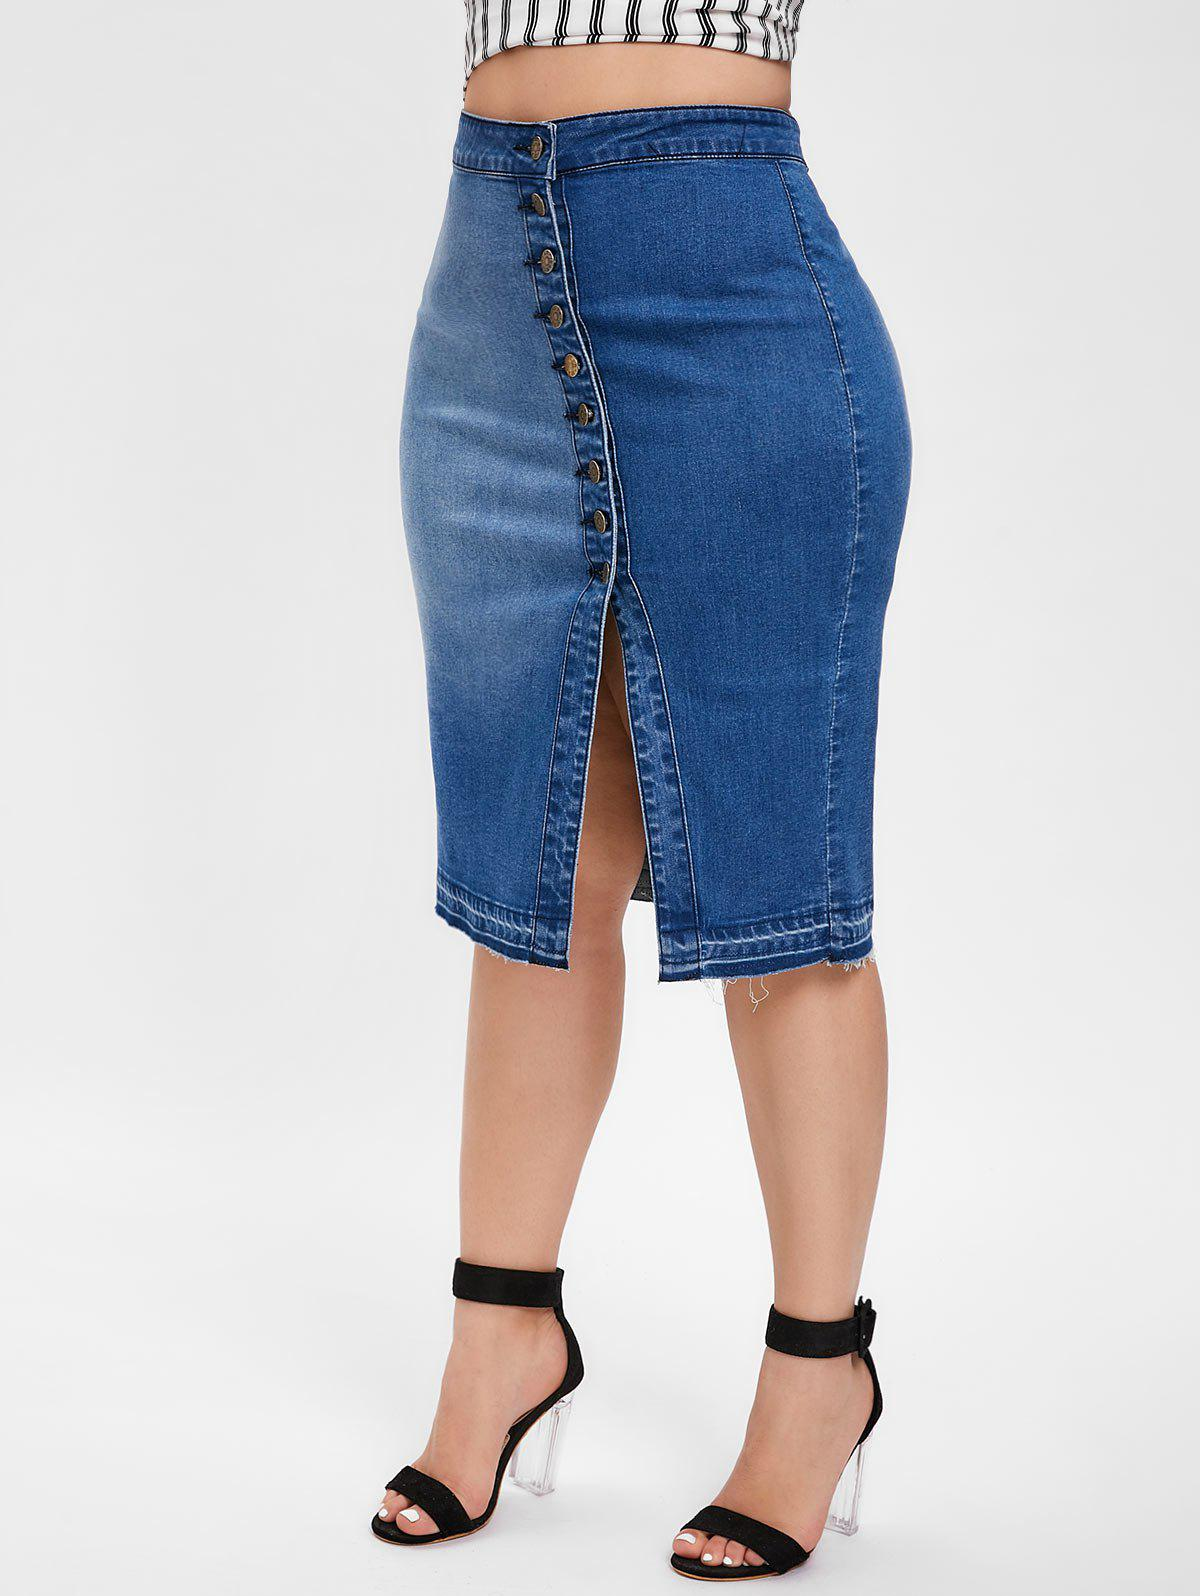 faadf660616 2019 Plus Size Button Front High Waist Denim Skirt